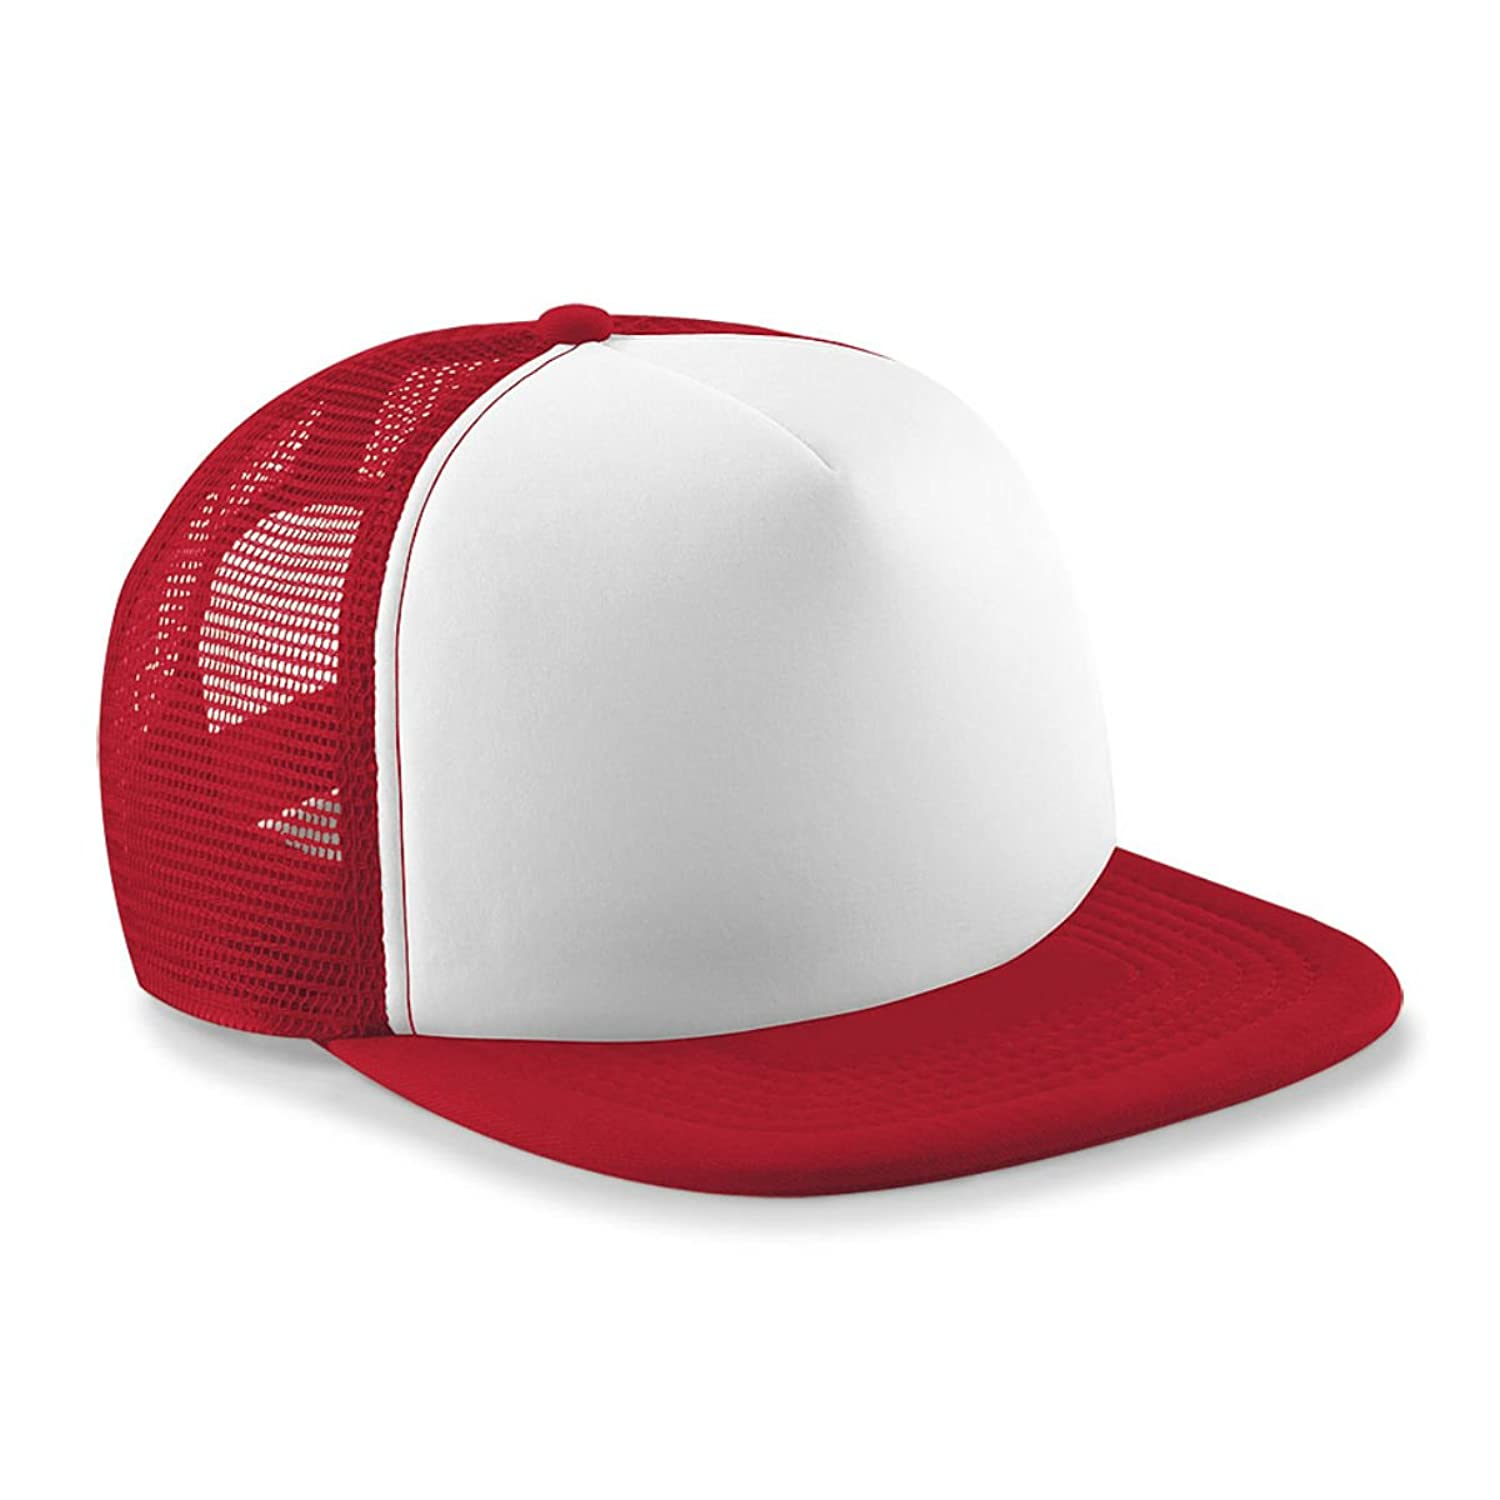 Kids Vintage Snap Back Trucker Cap Classic Red/White